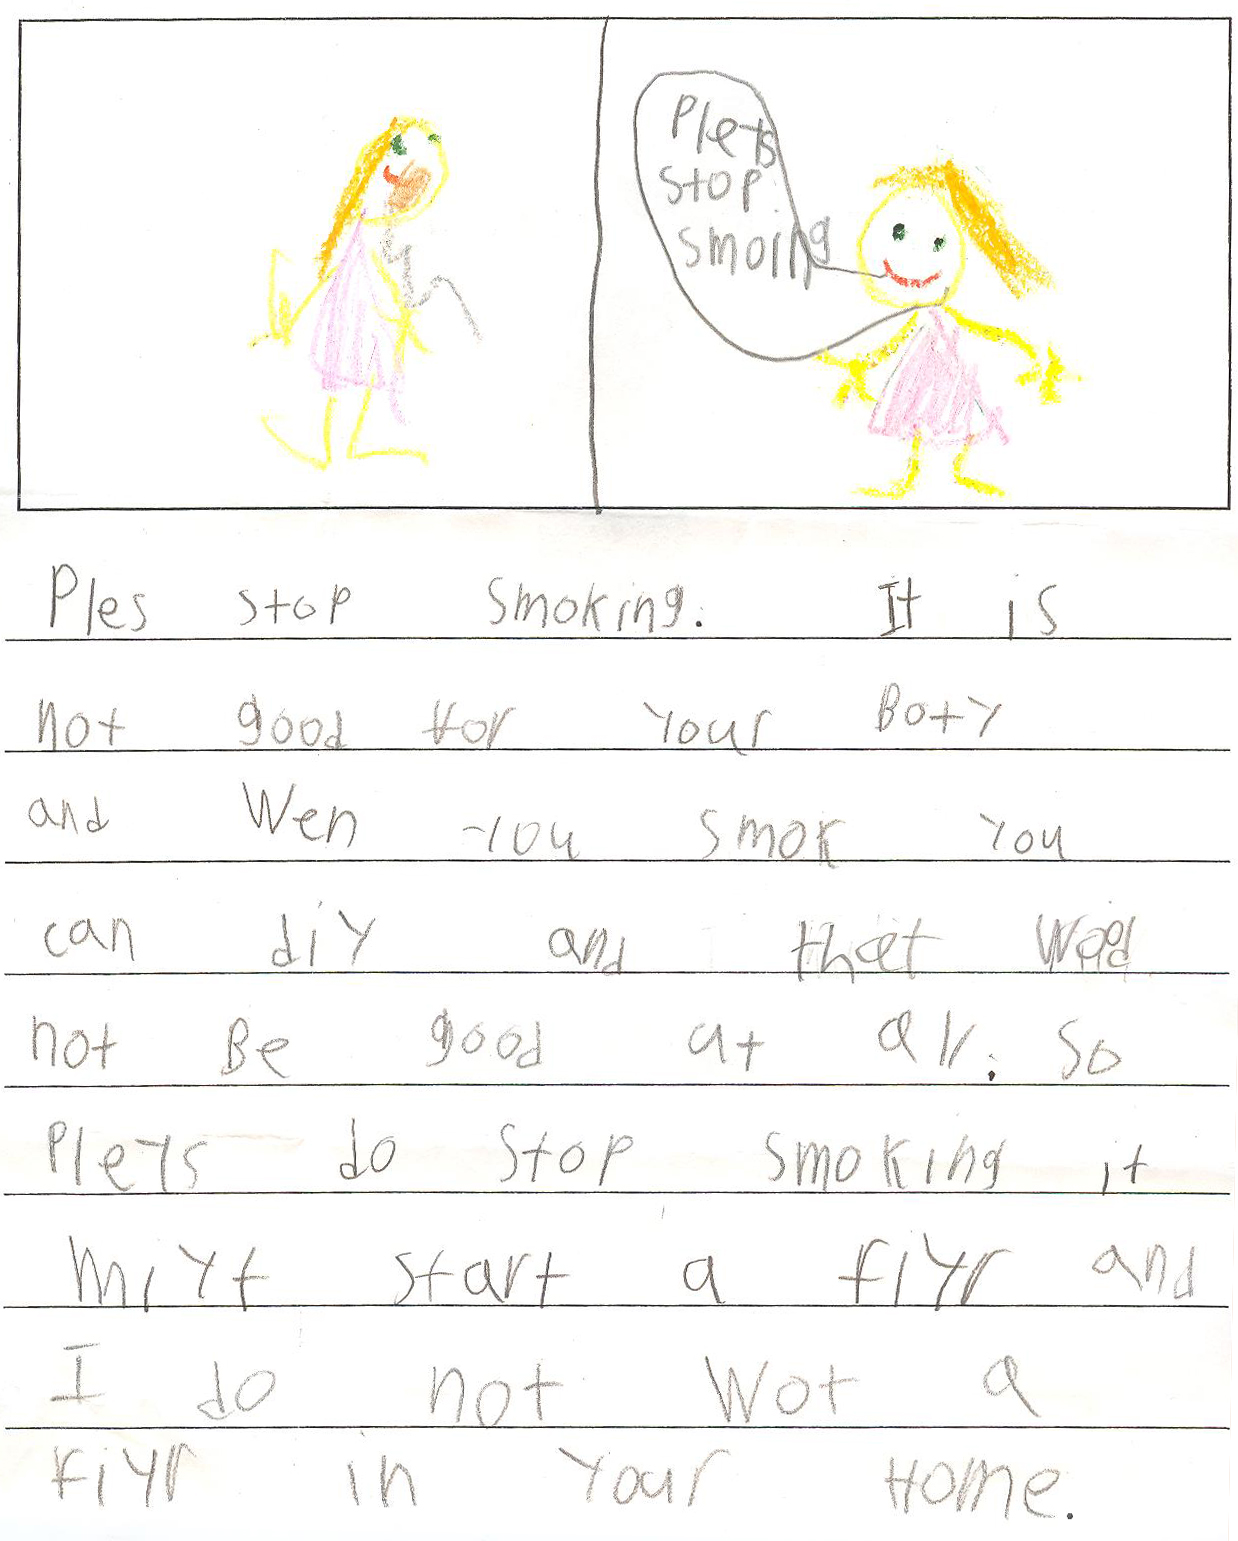 Elementary student encourages people to quit smoking